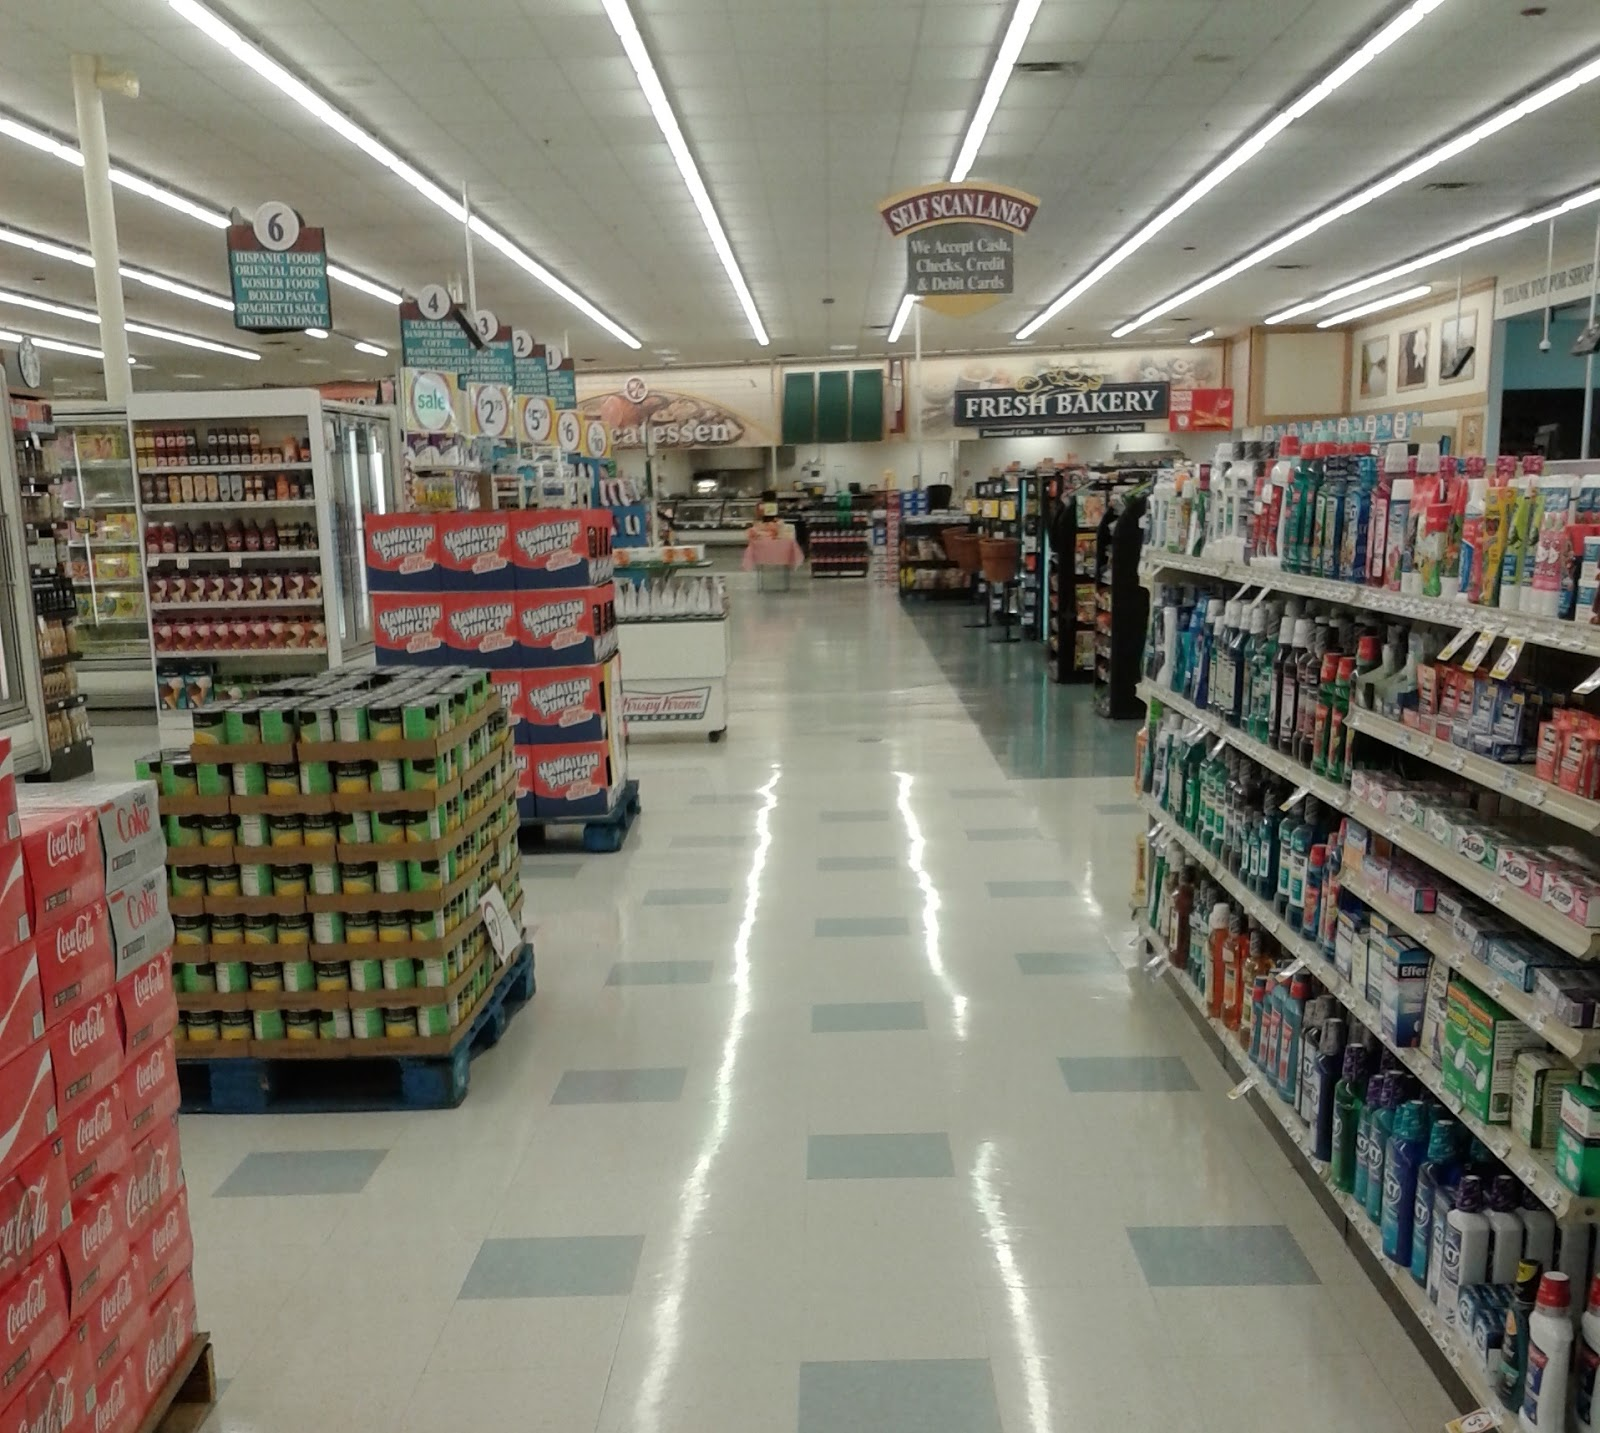 albertsons florida blog the rarest winn dixie interior looking back across the front end from the pharmacy as is typical many grocery stores these days the health and beauty products are located in a few